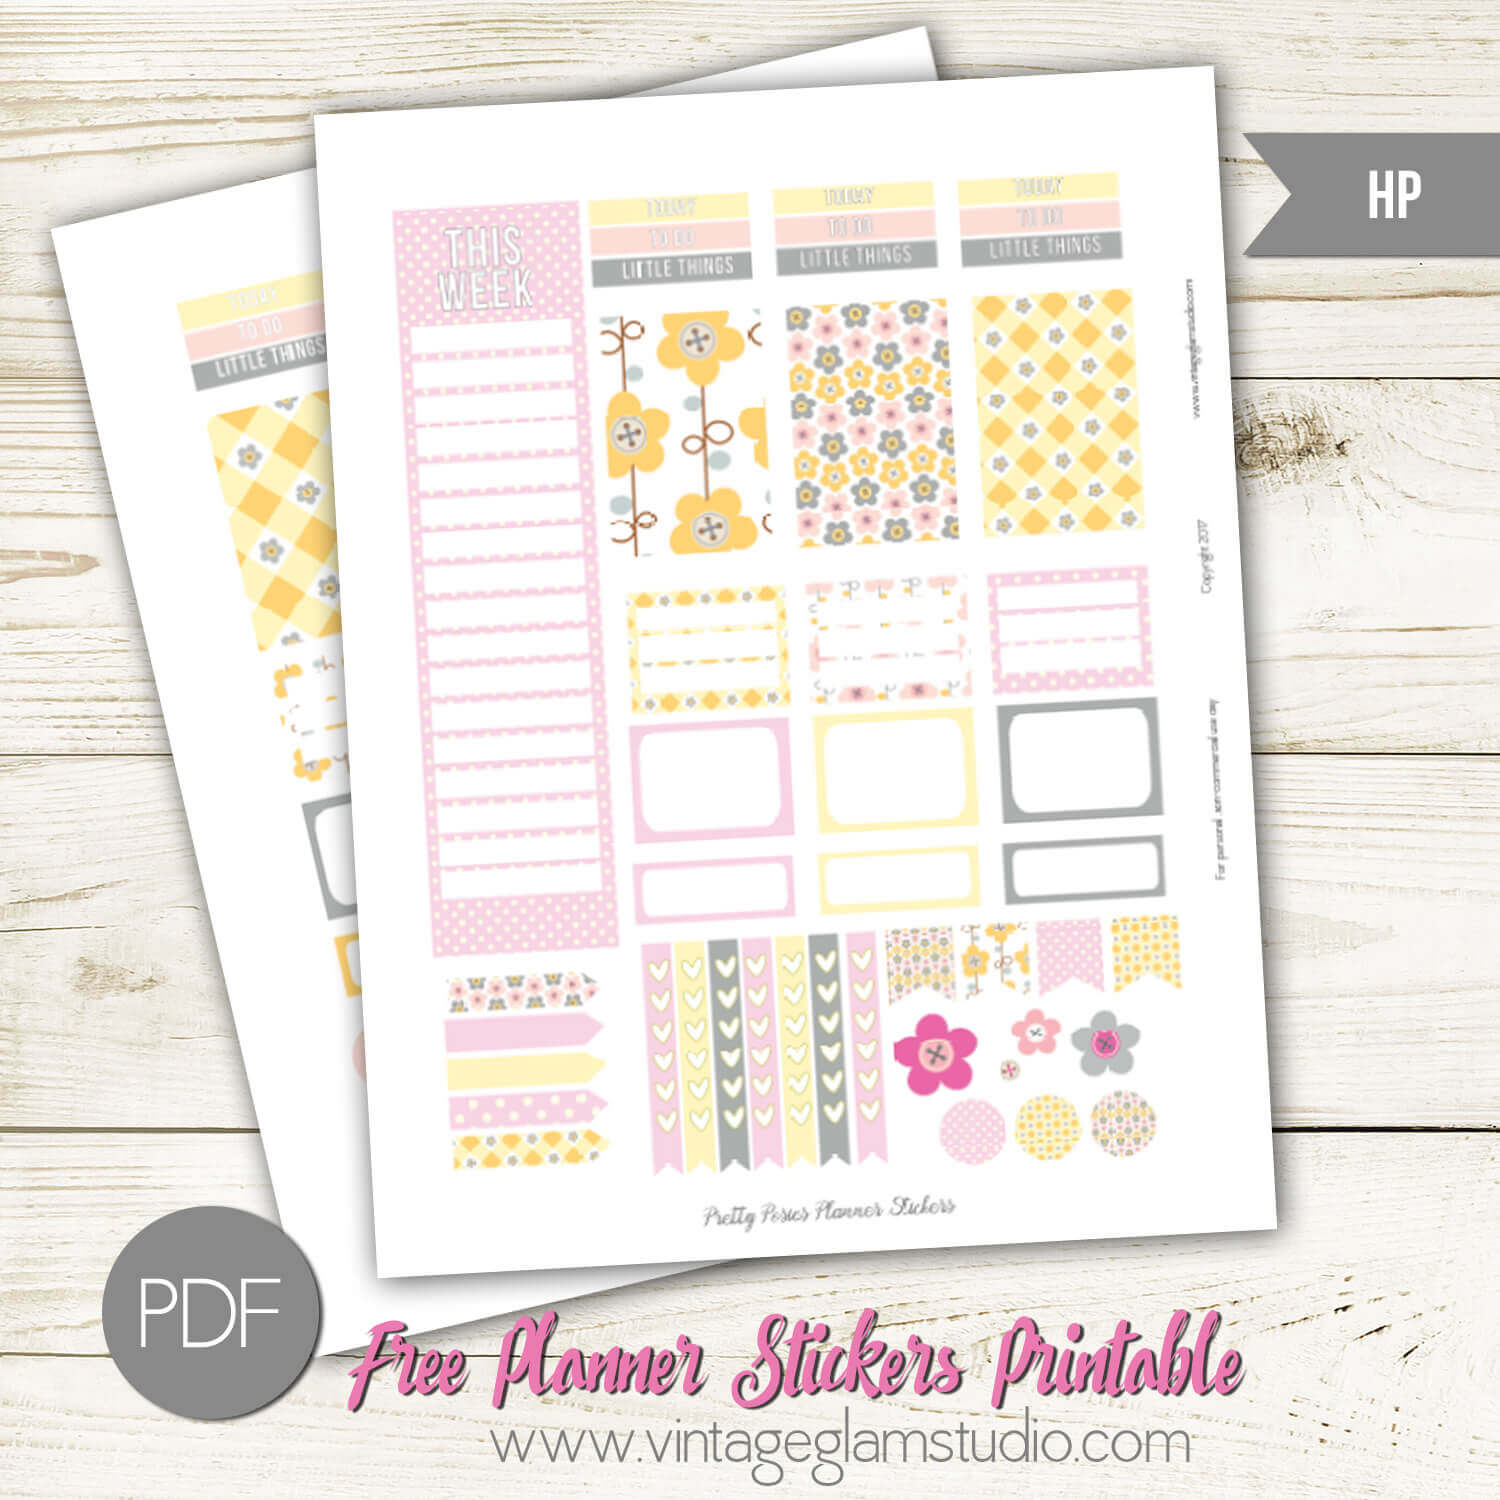 Pretty Posies Planner Stickers Free Printable